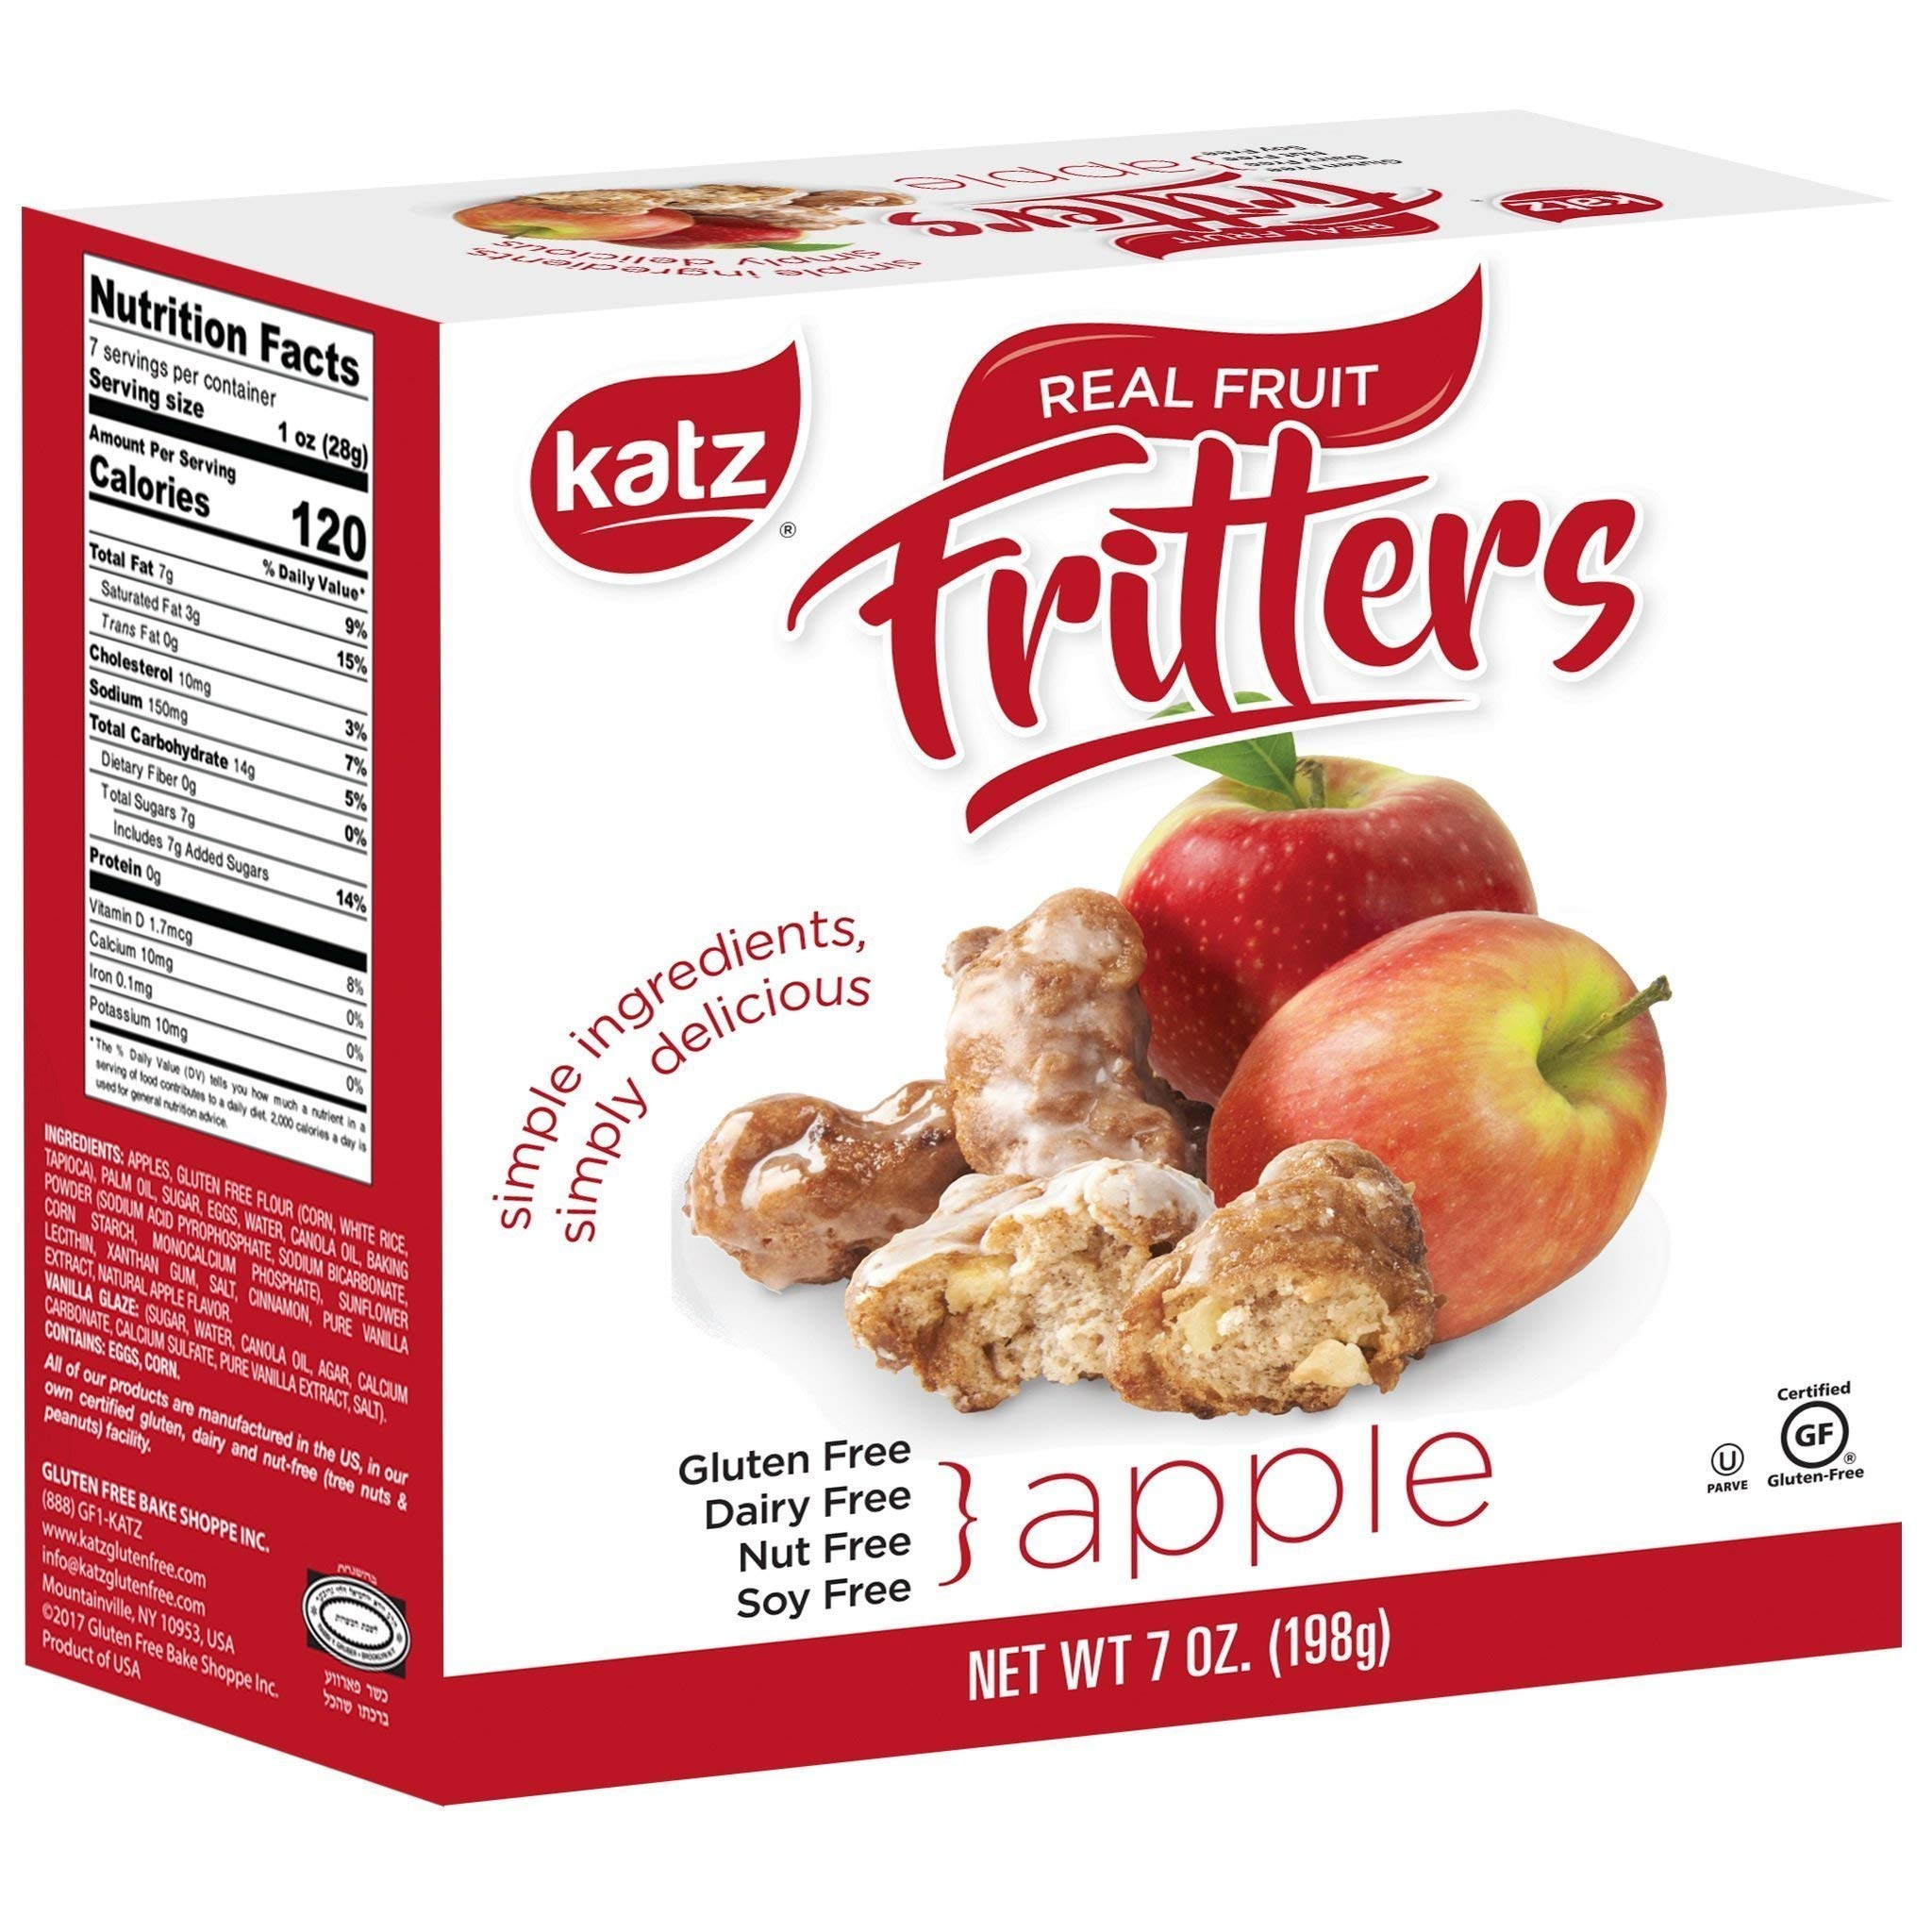 Katz Gluten Free Apple Fritters | Dairy, Nut, Soy and Gluten Free | Kosher (6 Packs, 7 Ounce Each) by Katz Gluten Free